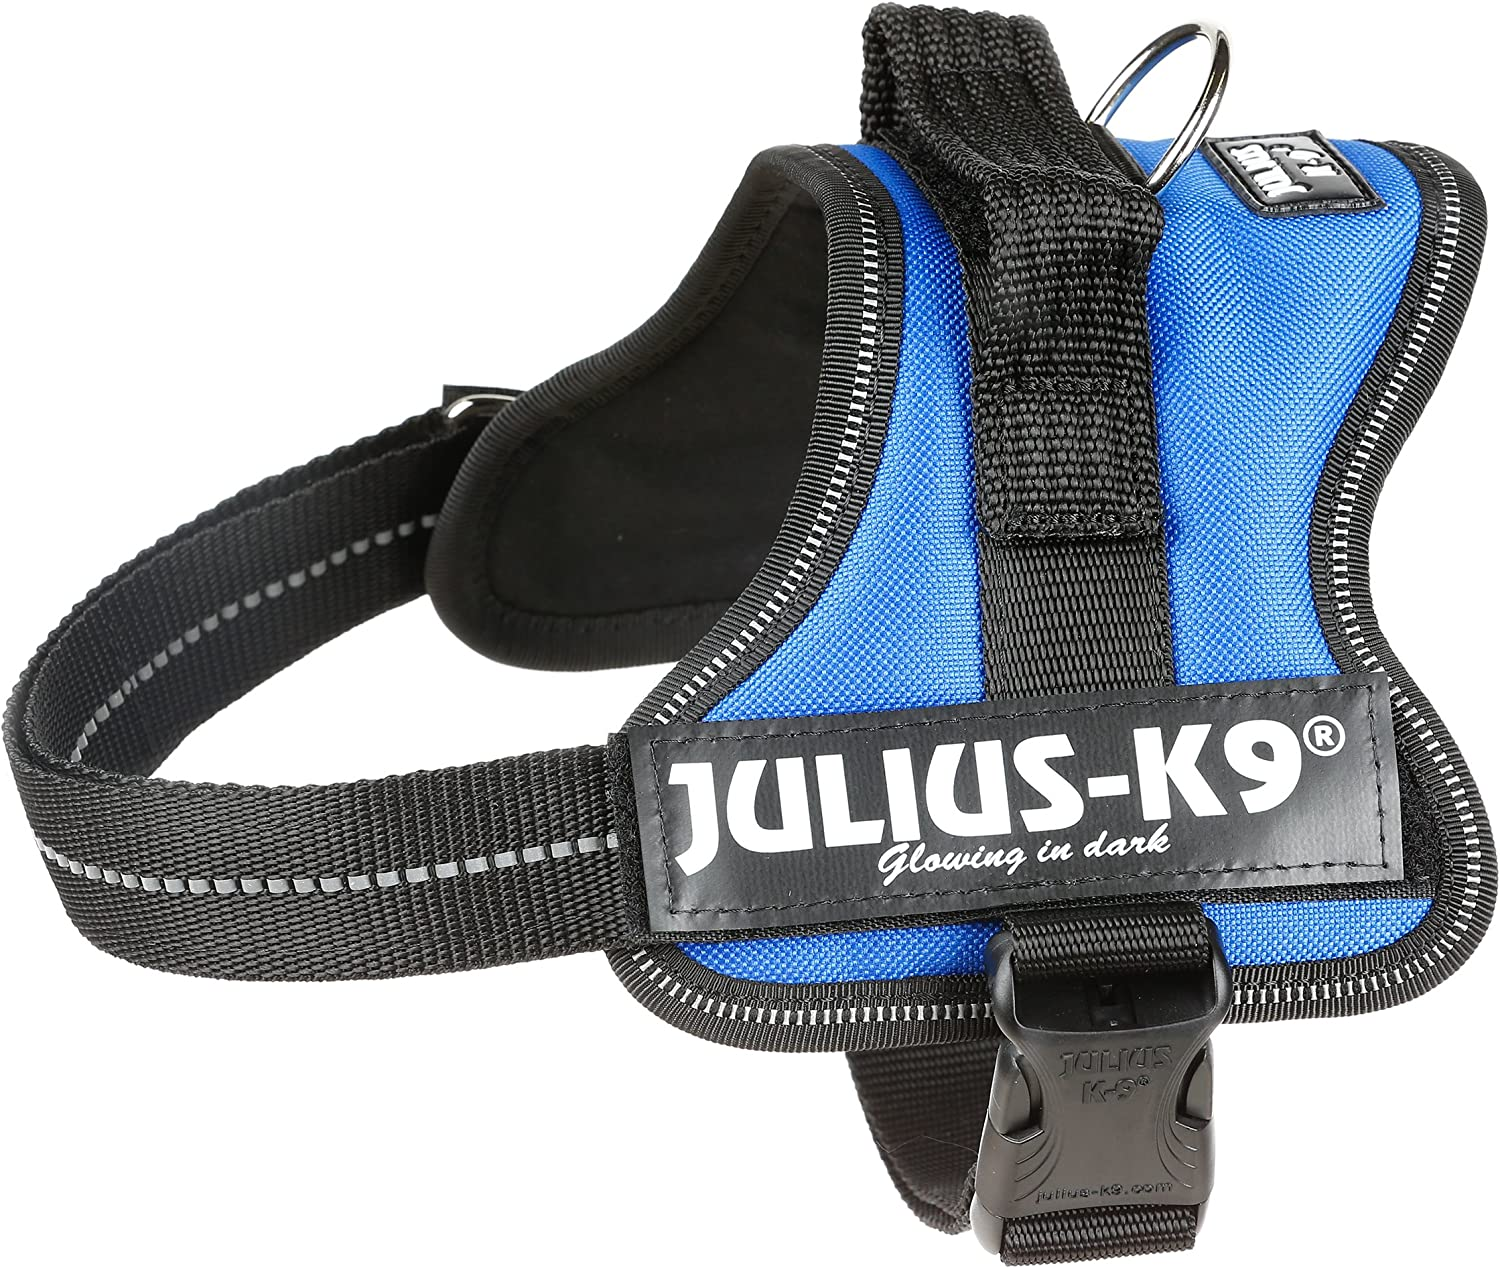 Julius-K9 Mini, 51-67 cm, Azul: Amazon.es: Productos para mascotas